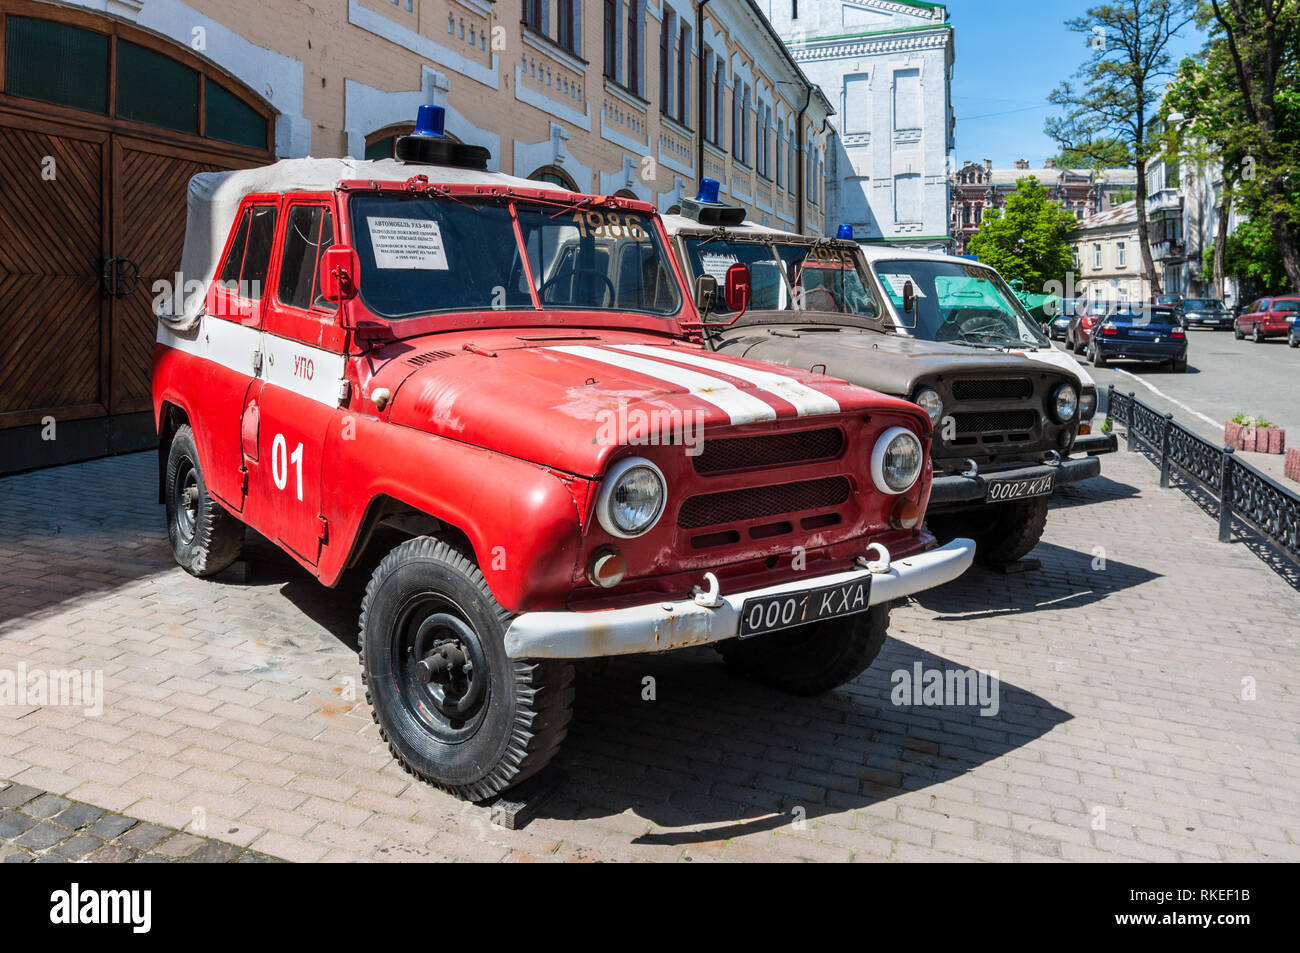 Kyiv, Ukraine - May 10, 2015: Retro Firemen Car in front of the Ukrainian National Chornobyl Museum, dedicated to the 1986 Chernobyl disaster and cons - Stock Image